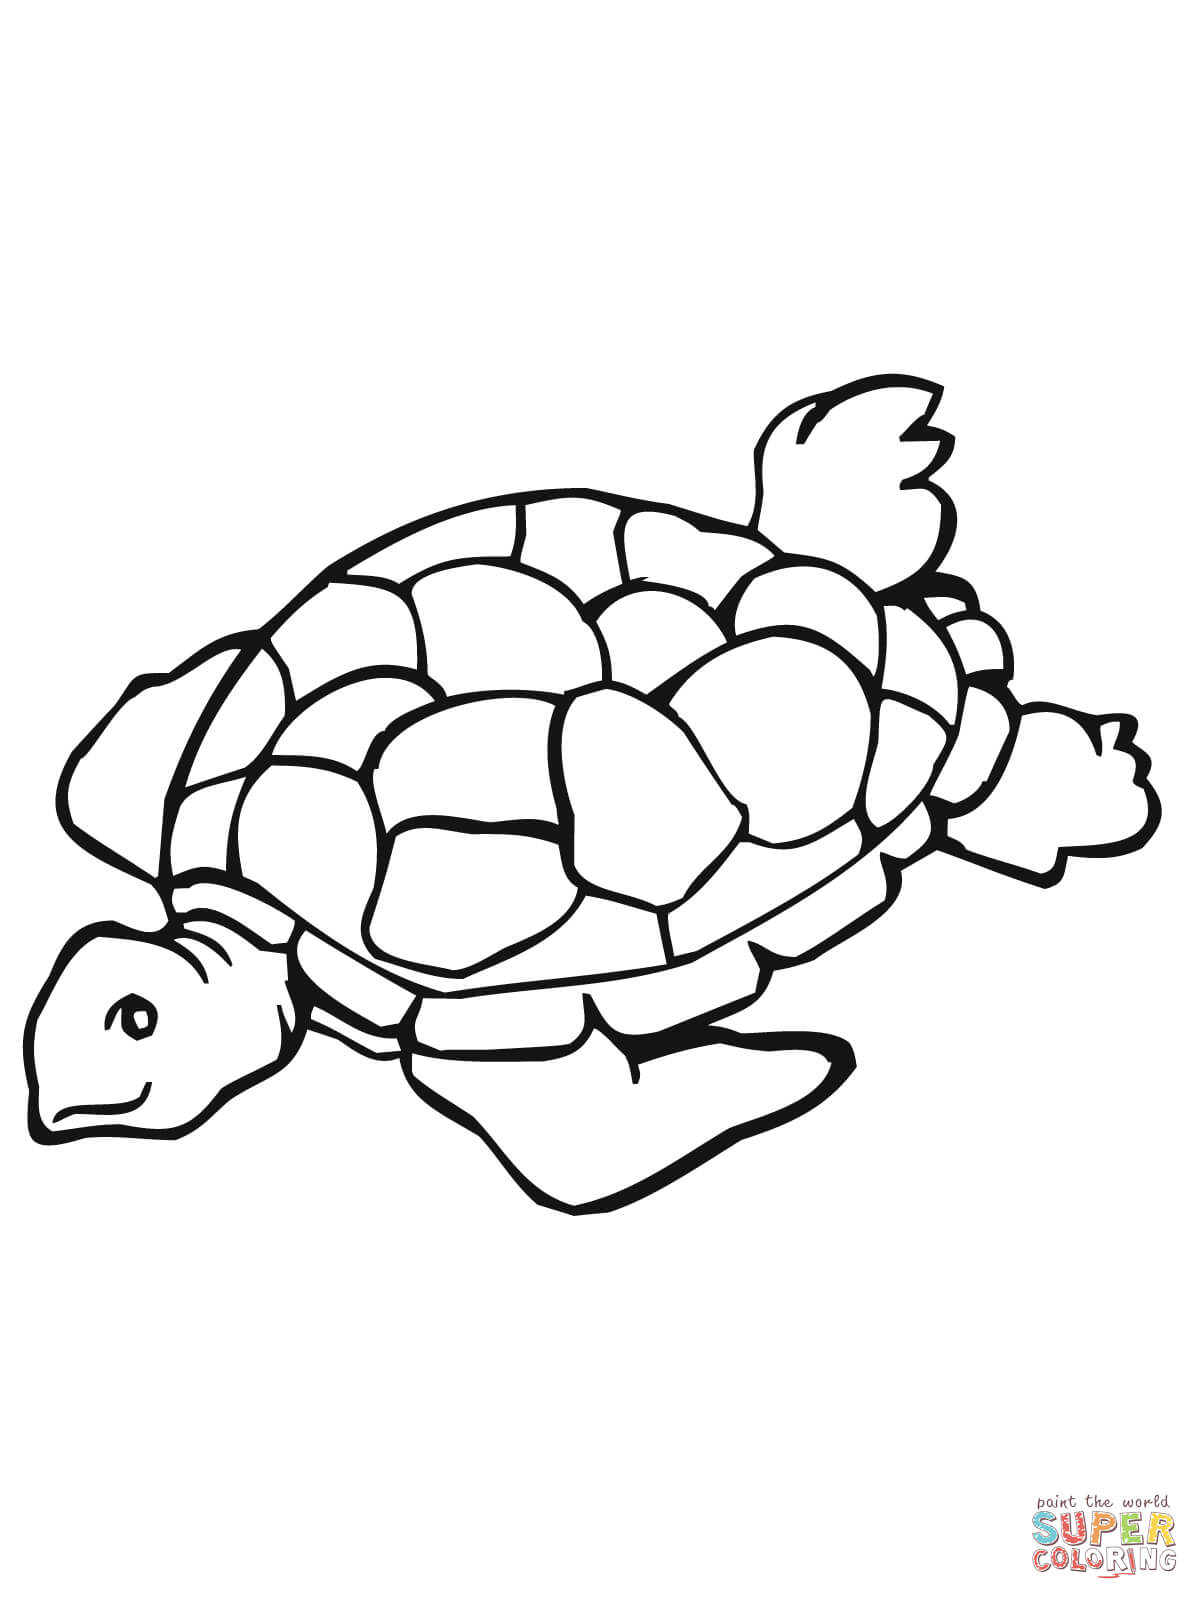 Turtle Clipart Black And White.